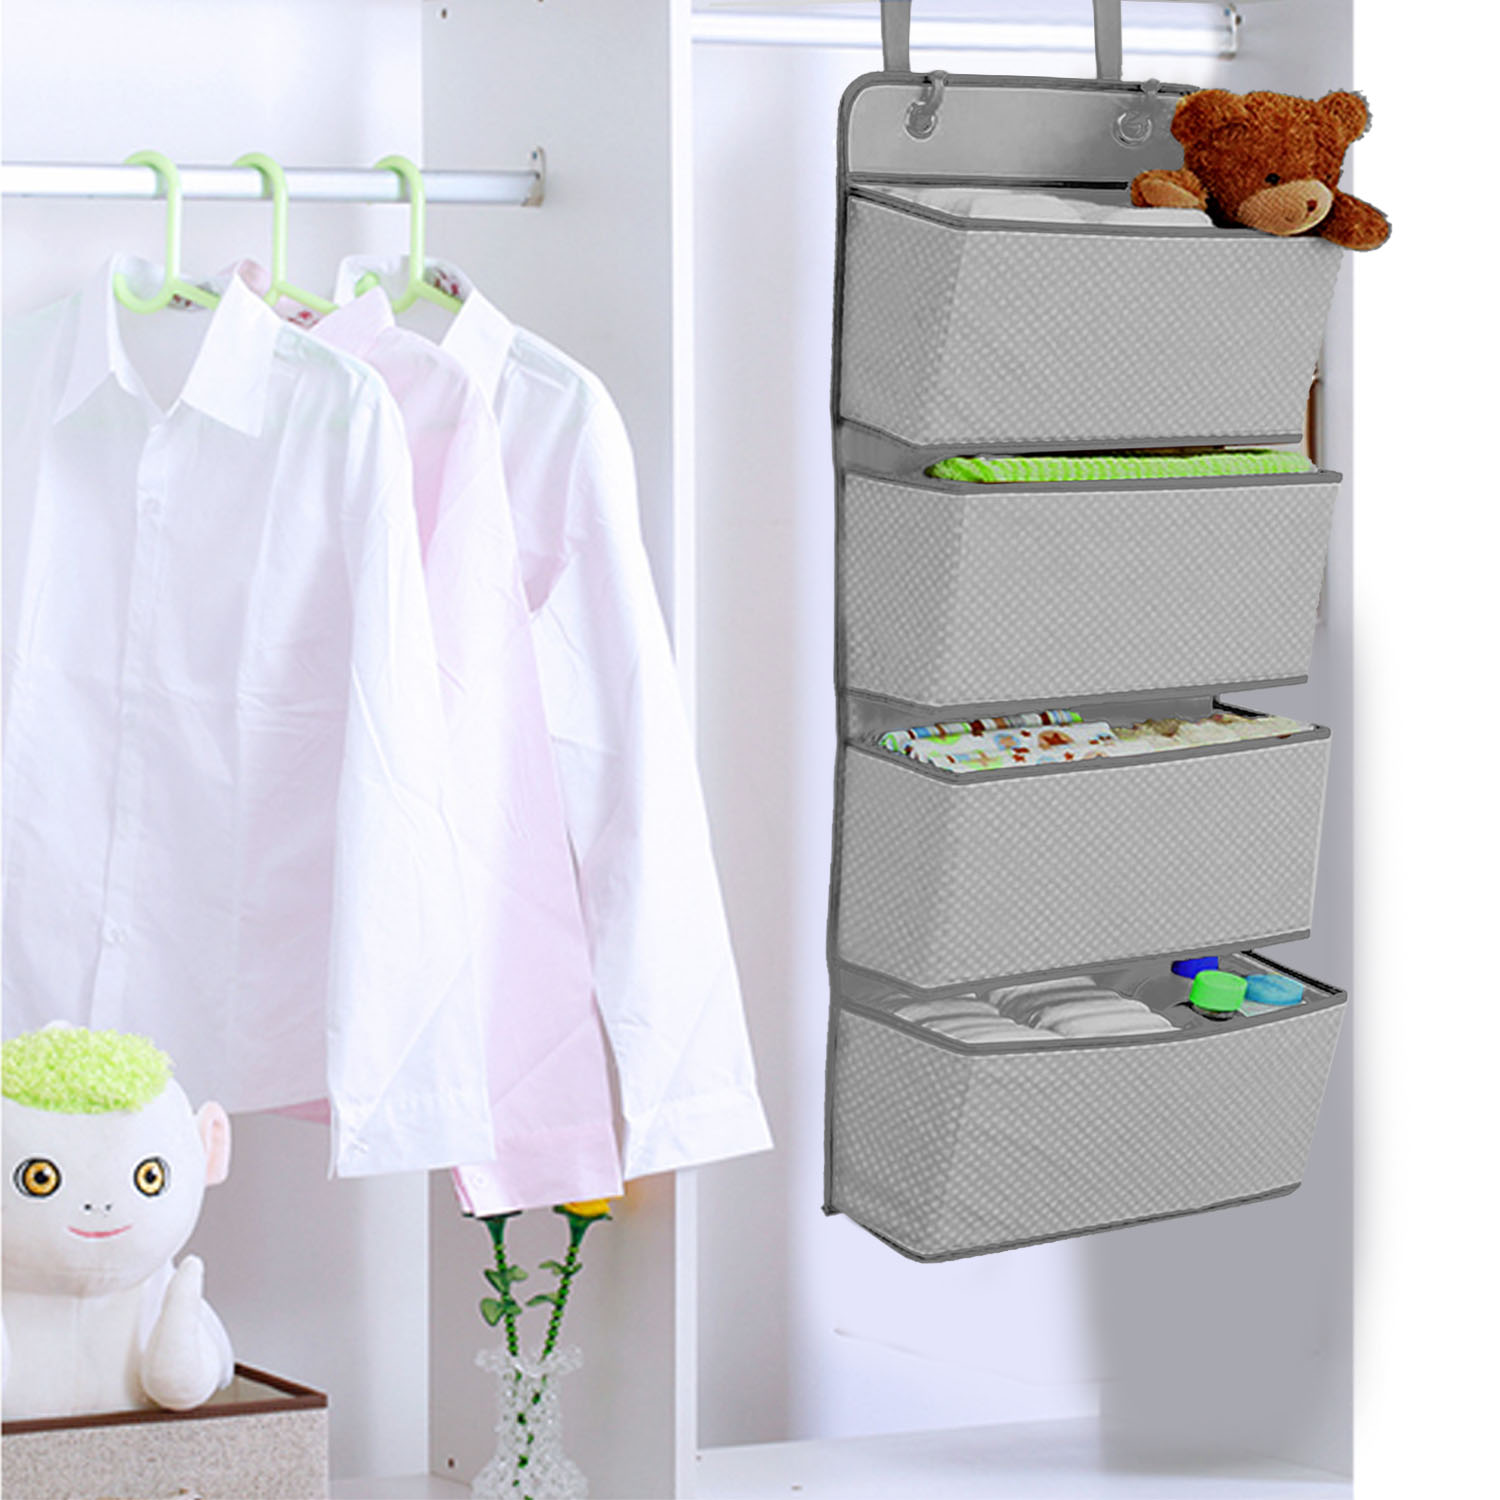 Simple Houseware 4 Pocket Hanging Wall Closet Storage Bag Organizer Over Door Cloth Toy Organizer Bag Pouch Hanger